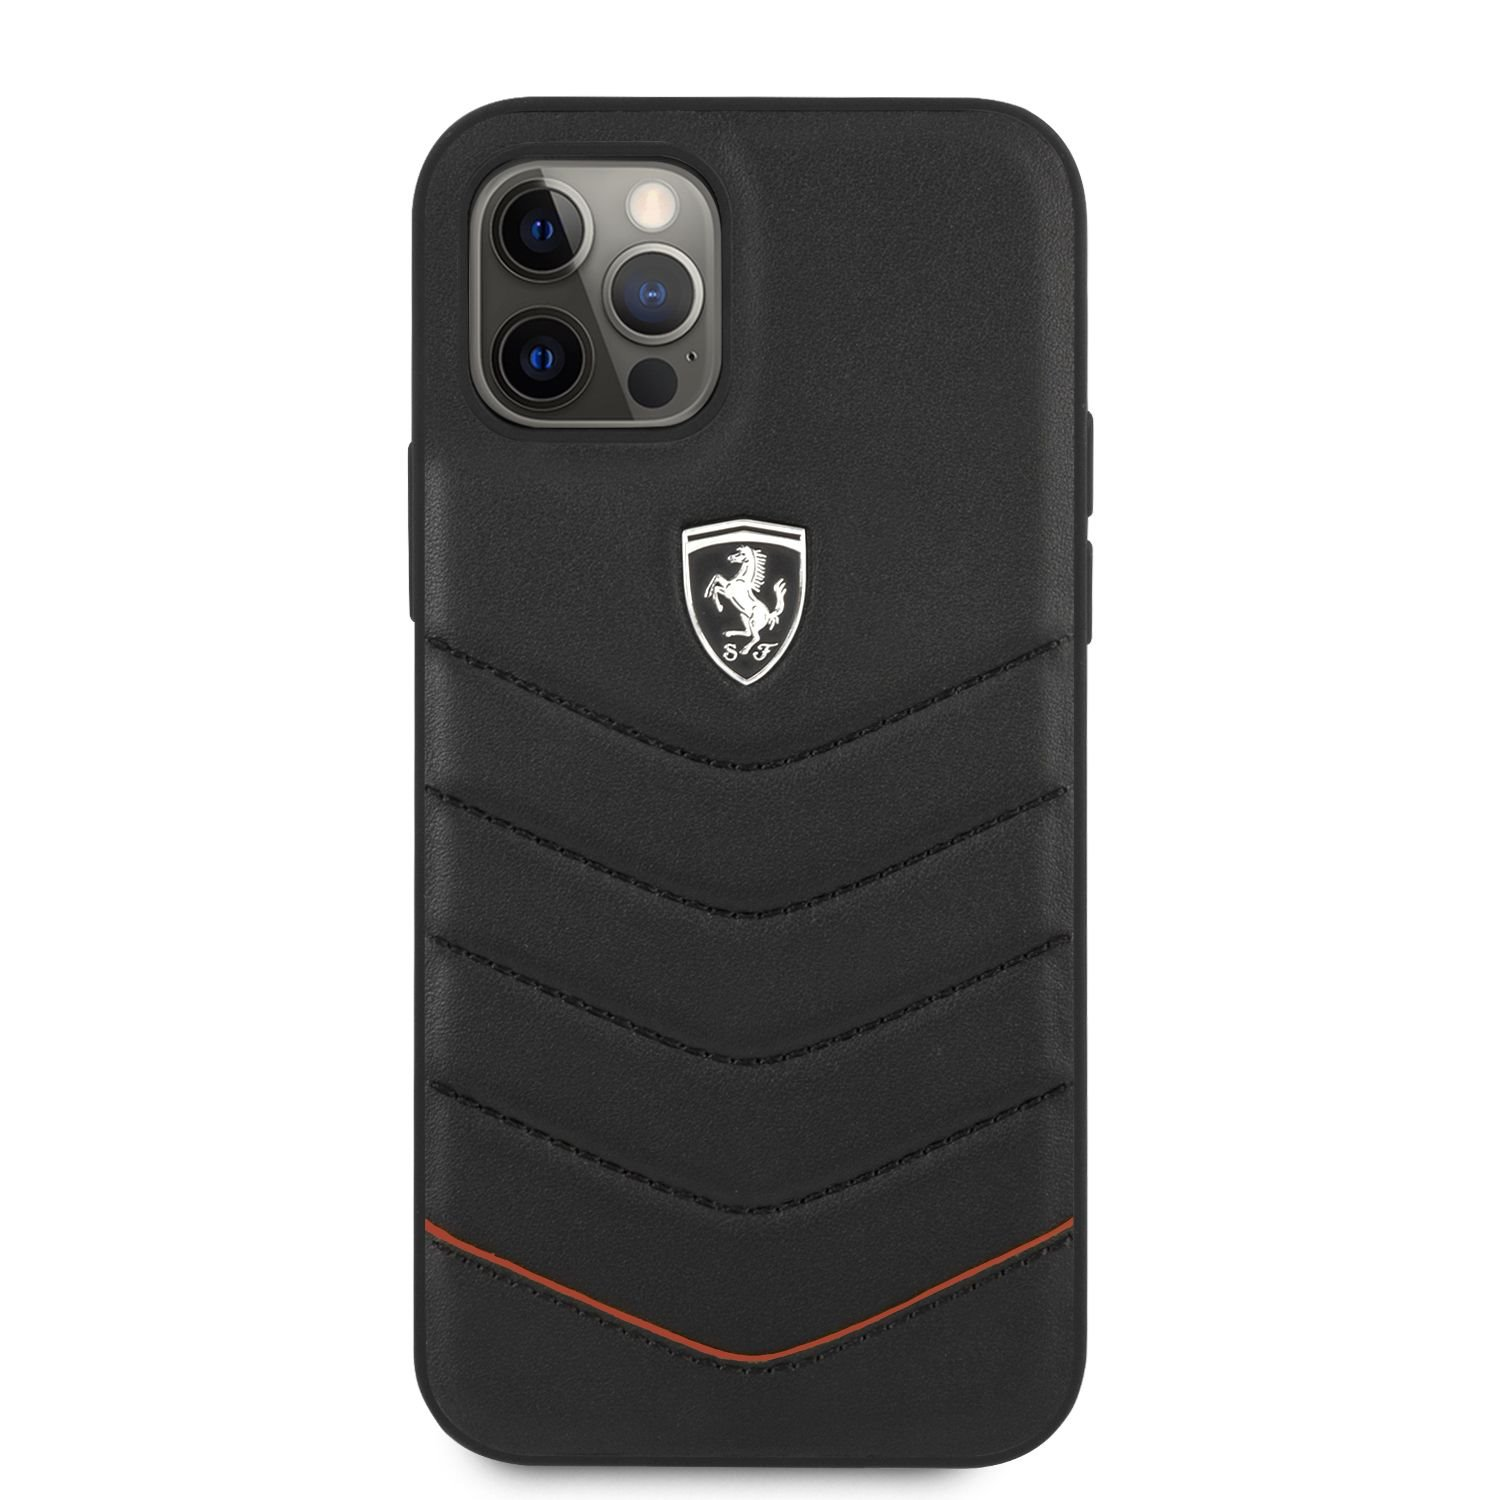 FEHQUHCP12MBK Ferrari Off Track Leather Quilted Zadní Kryt pro iPhone 12/12 Pro 6.1 Black 3700740479483